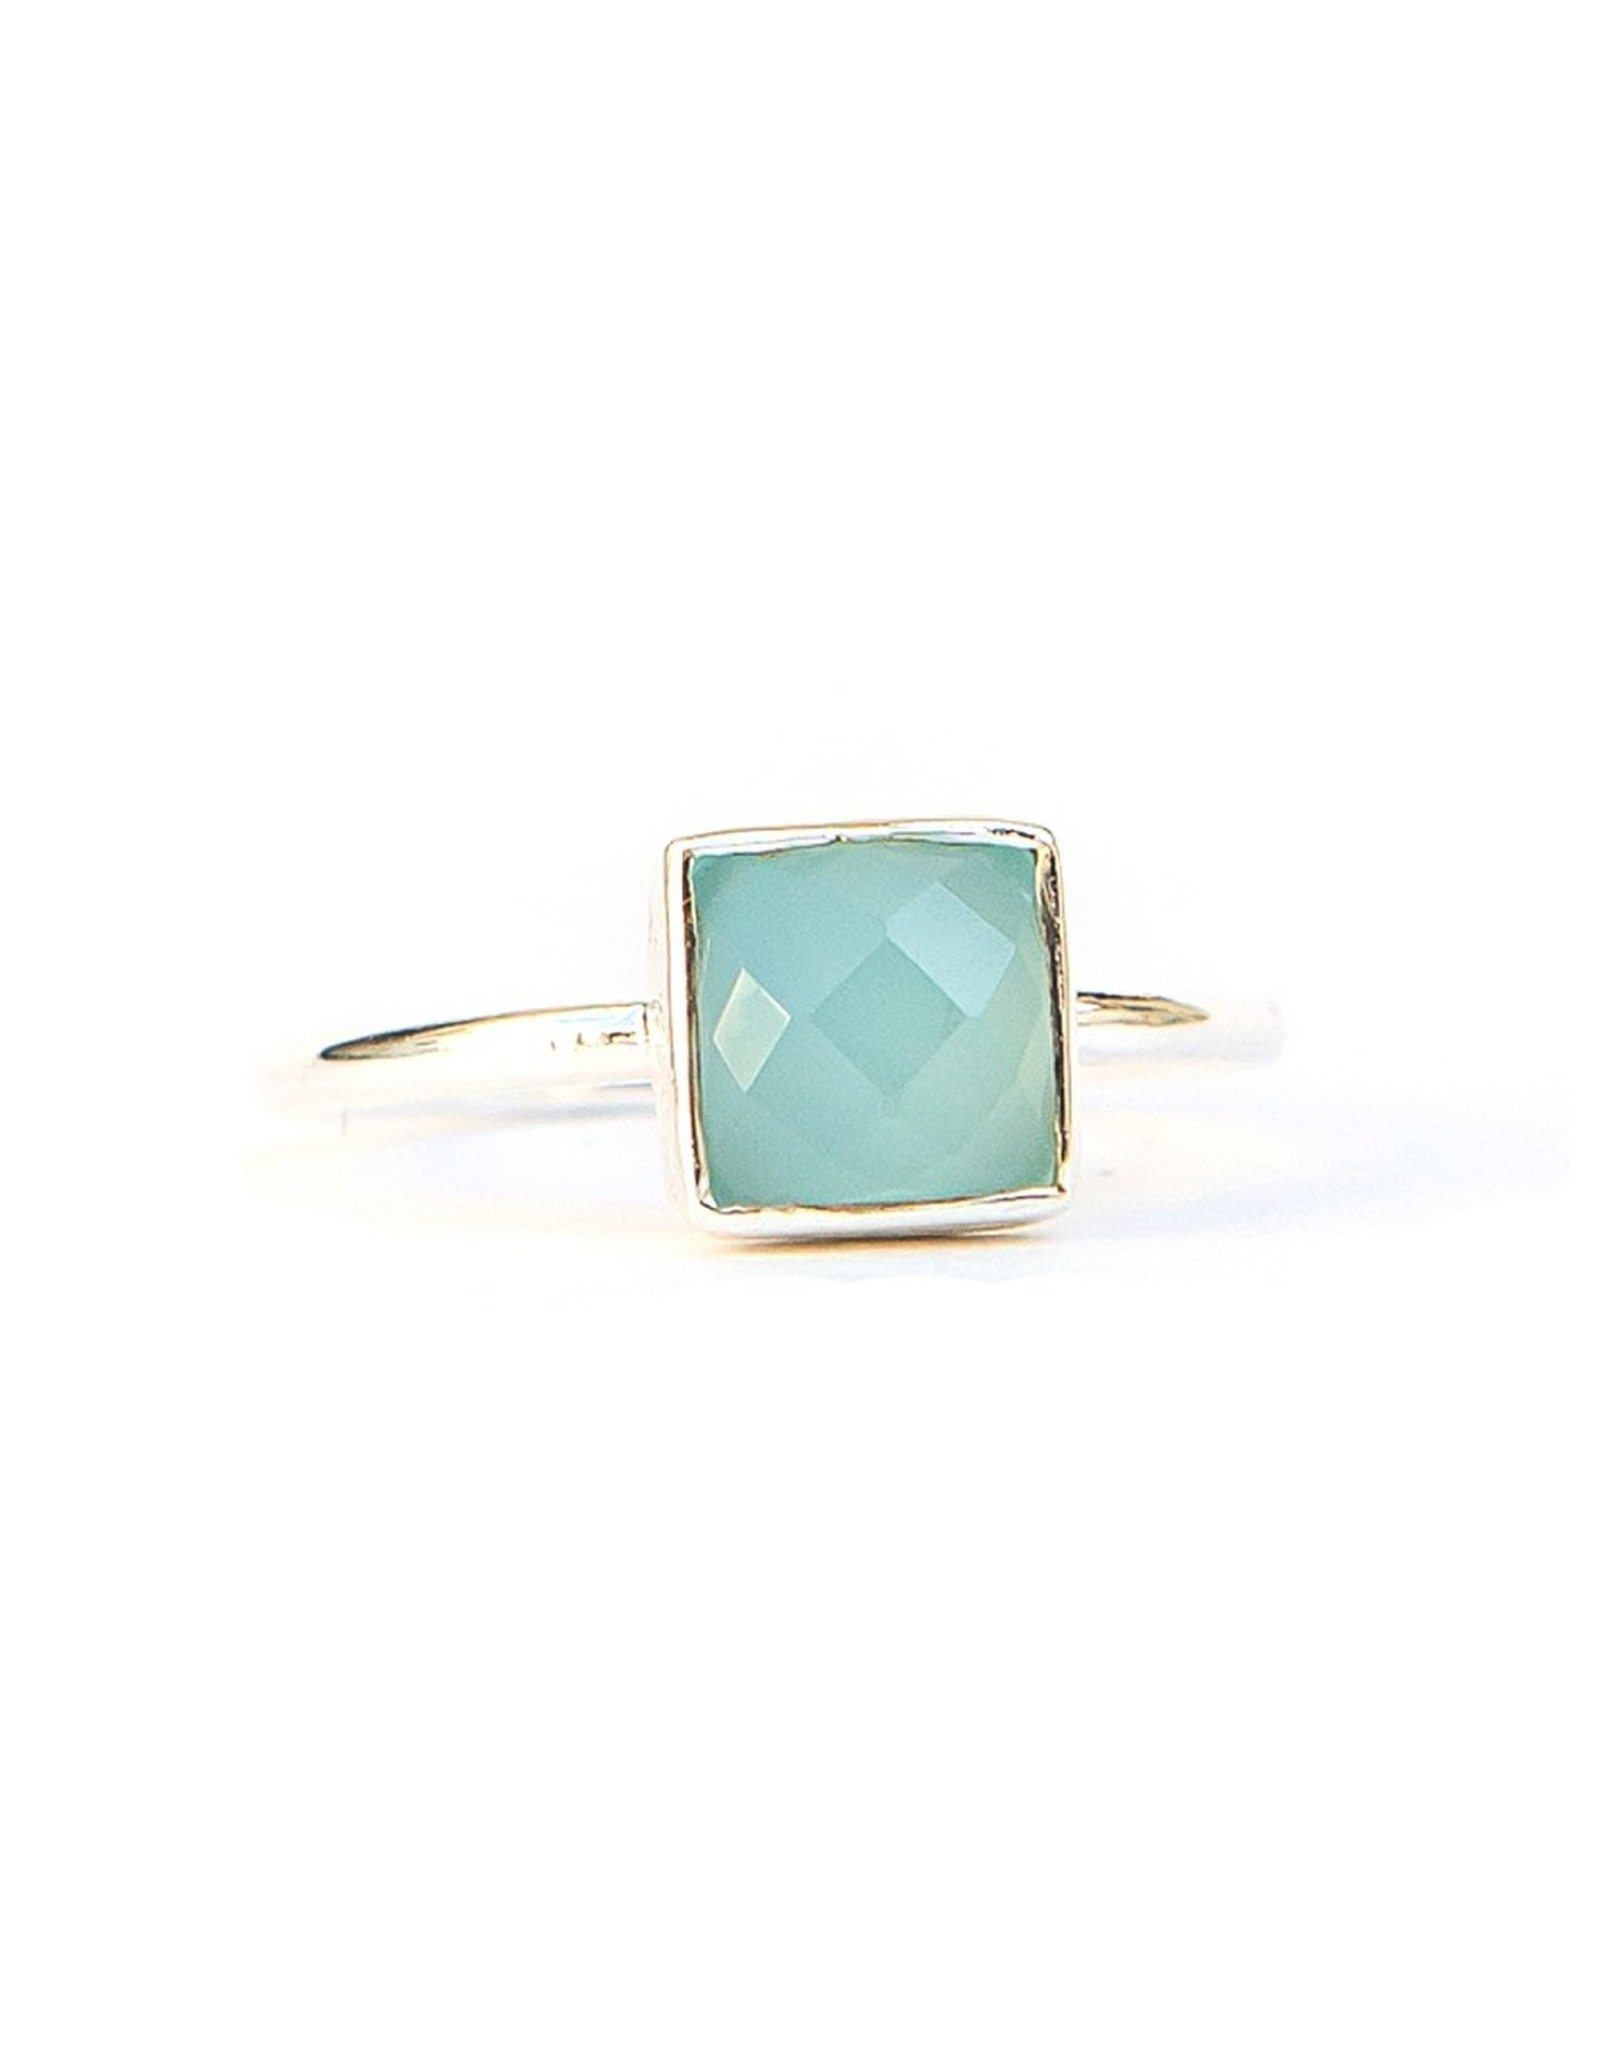 Sultry Sea Sterling Ring, India